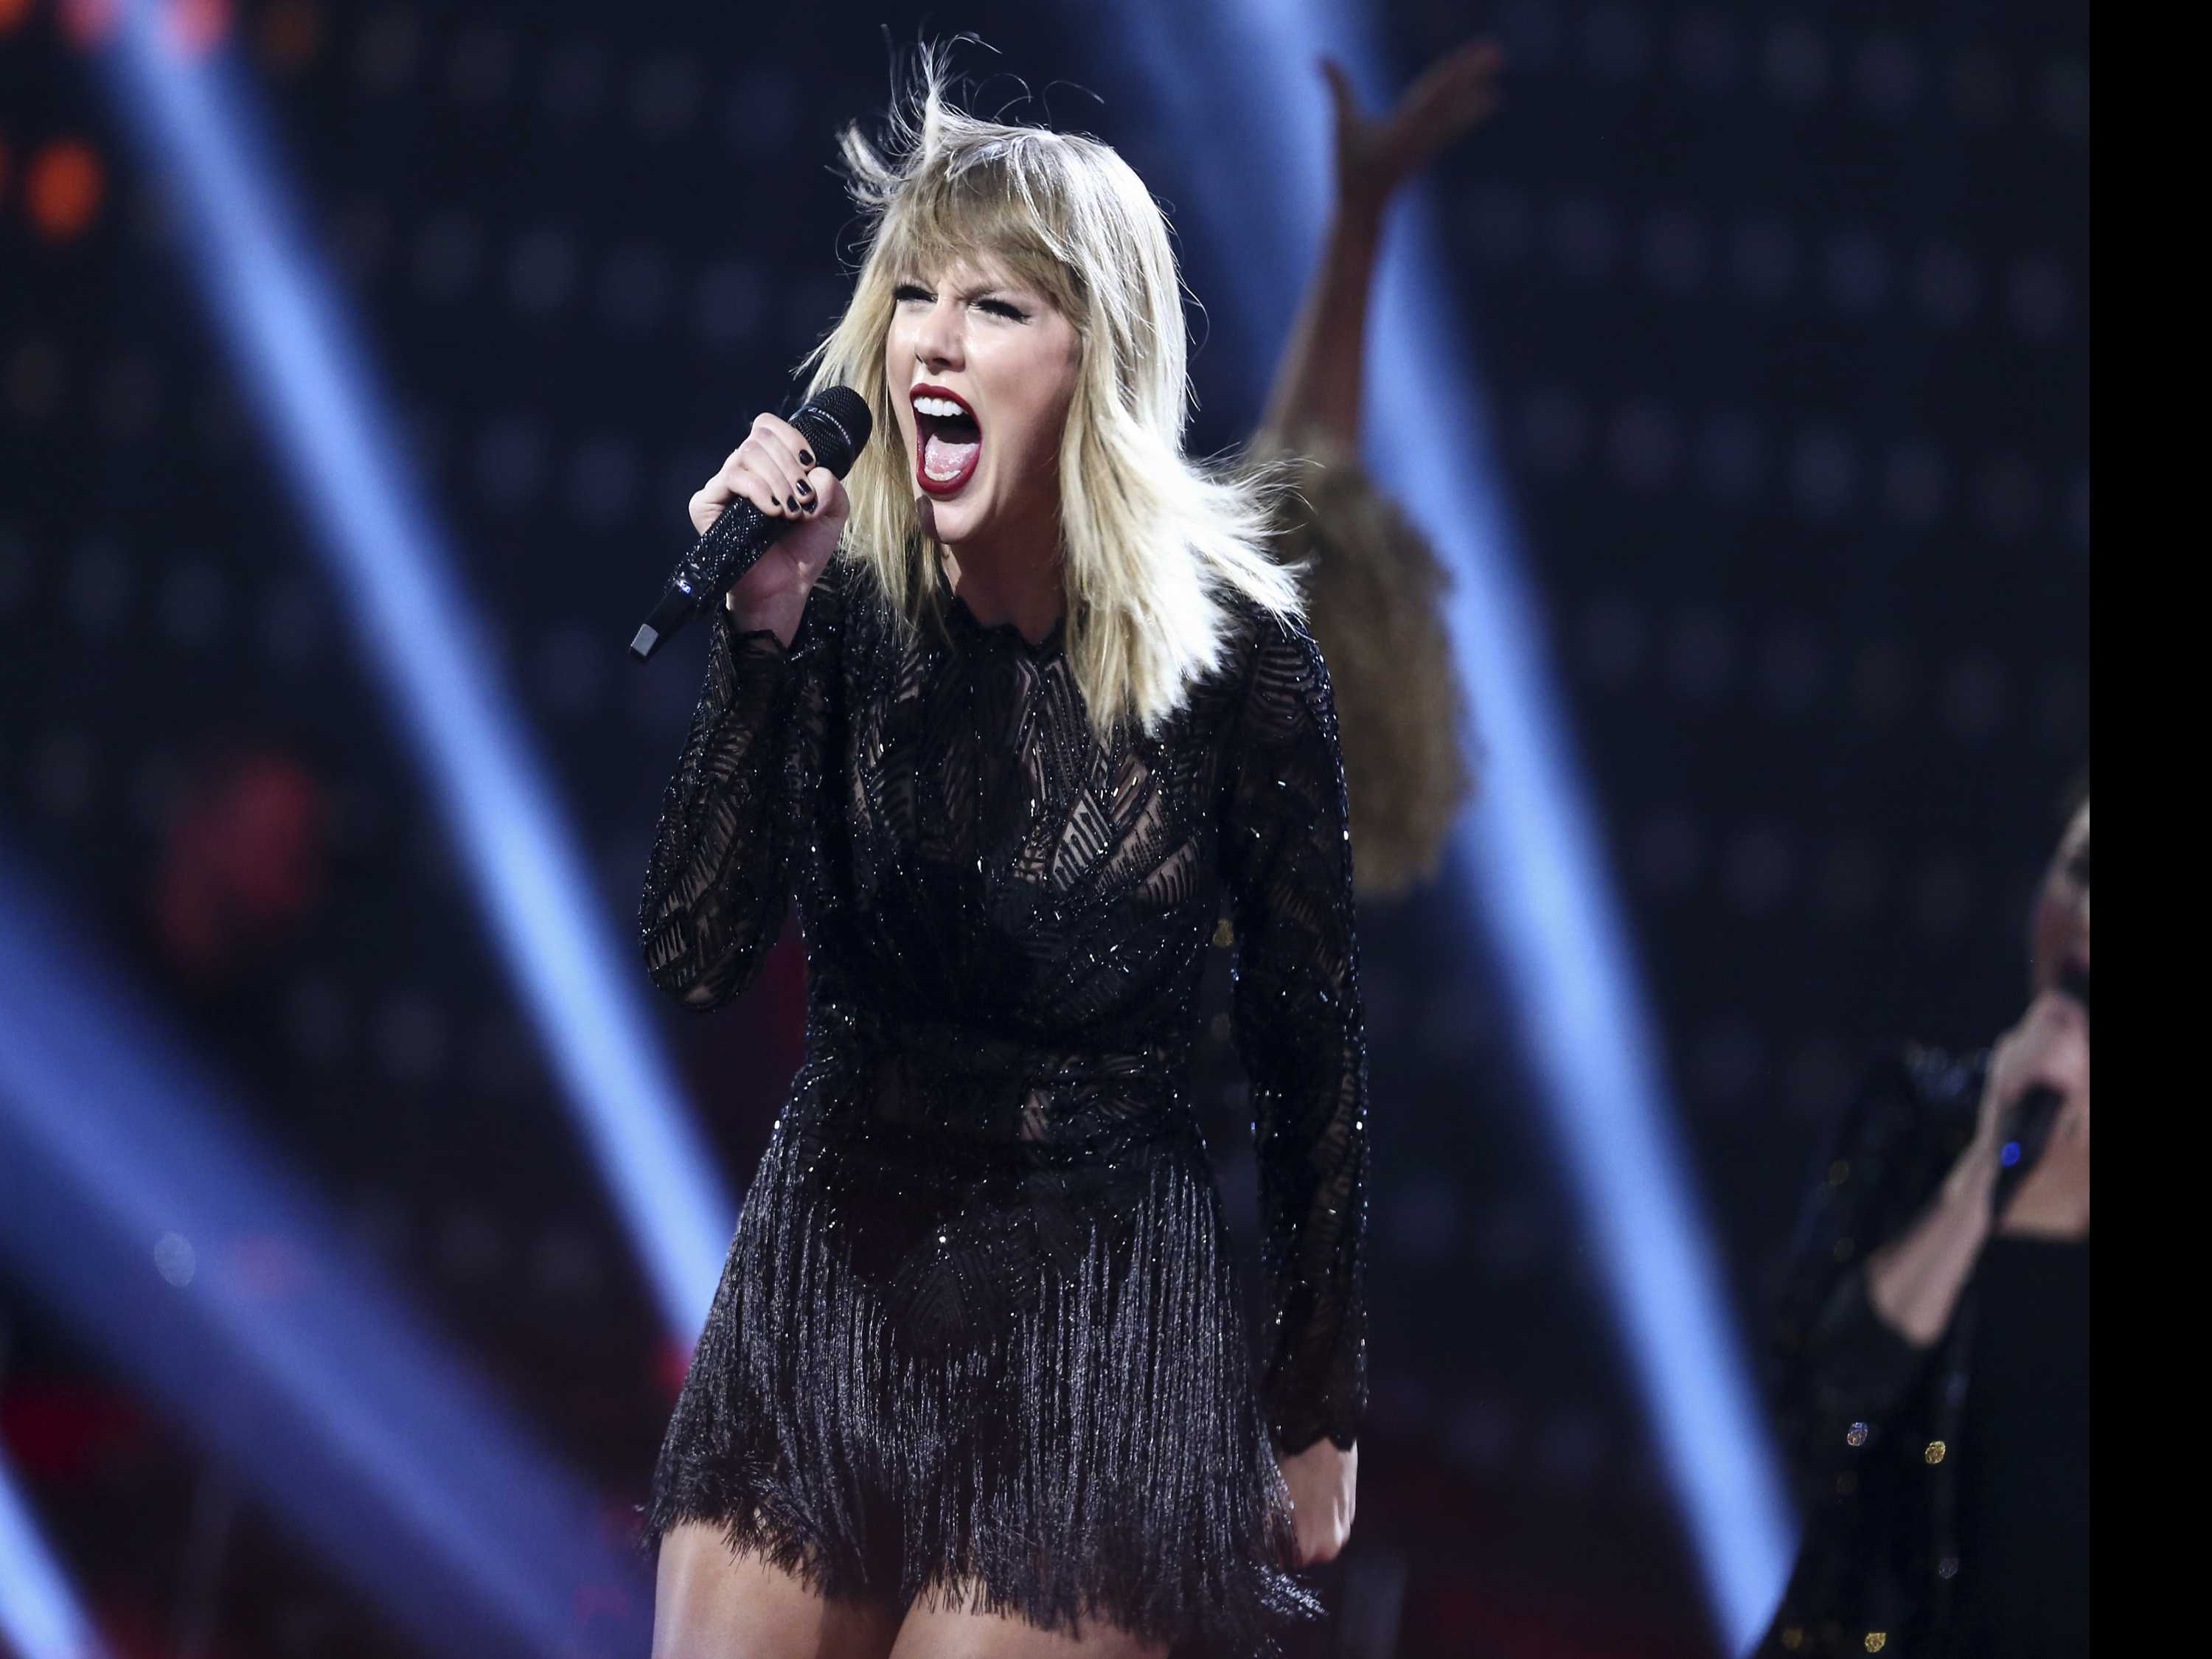 Watch: A Snake's Tail? A Solar Eclipse. Taylor Swift Teases Fans